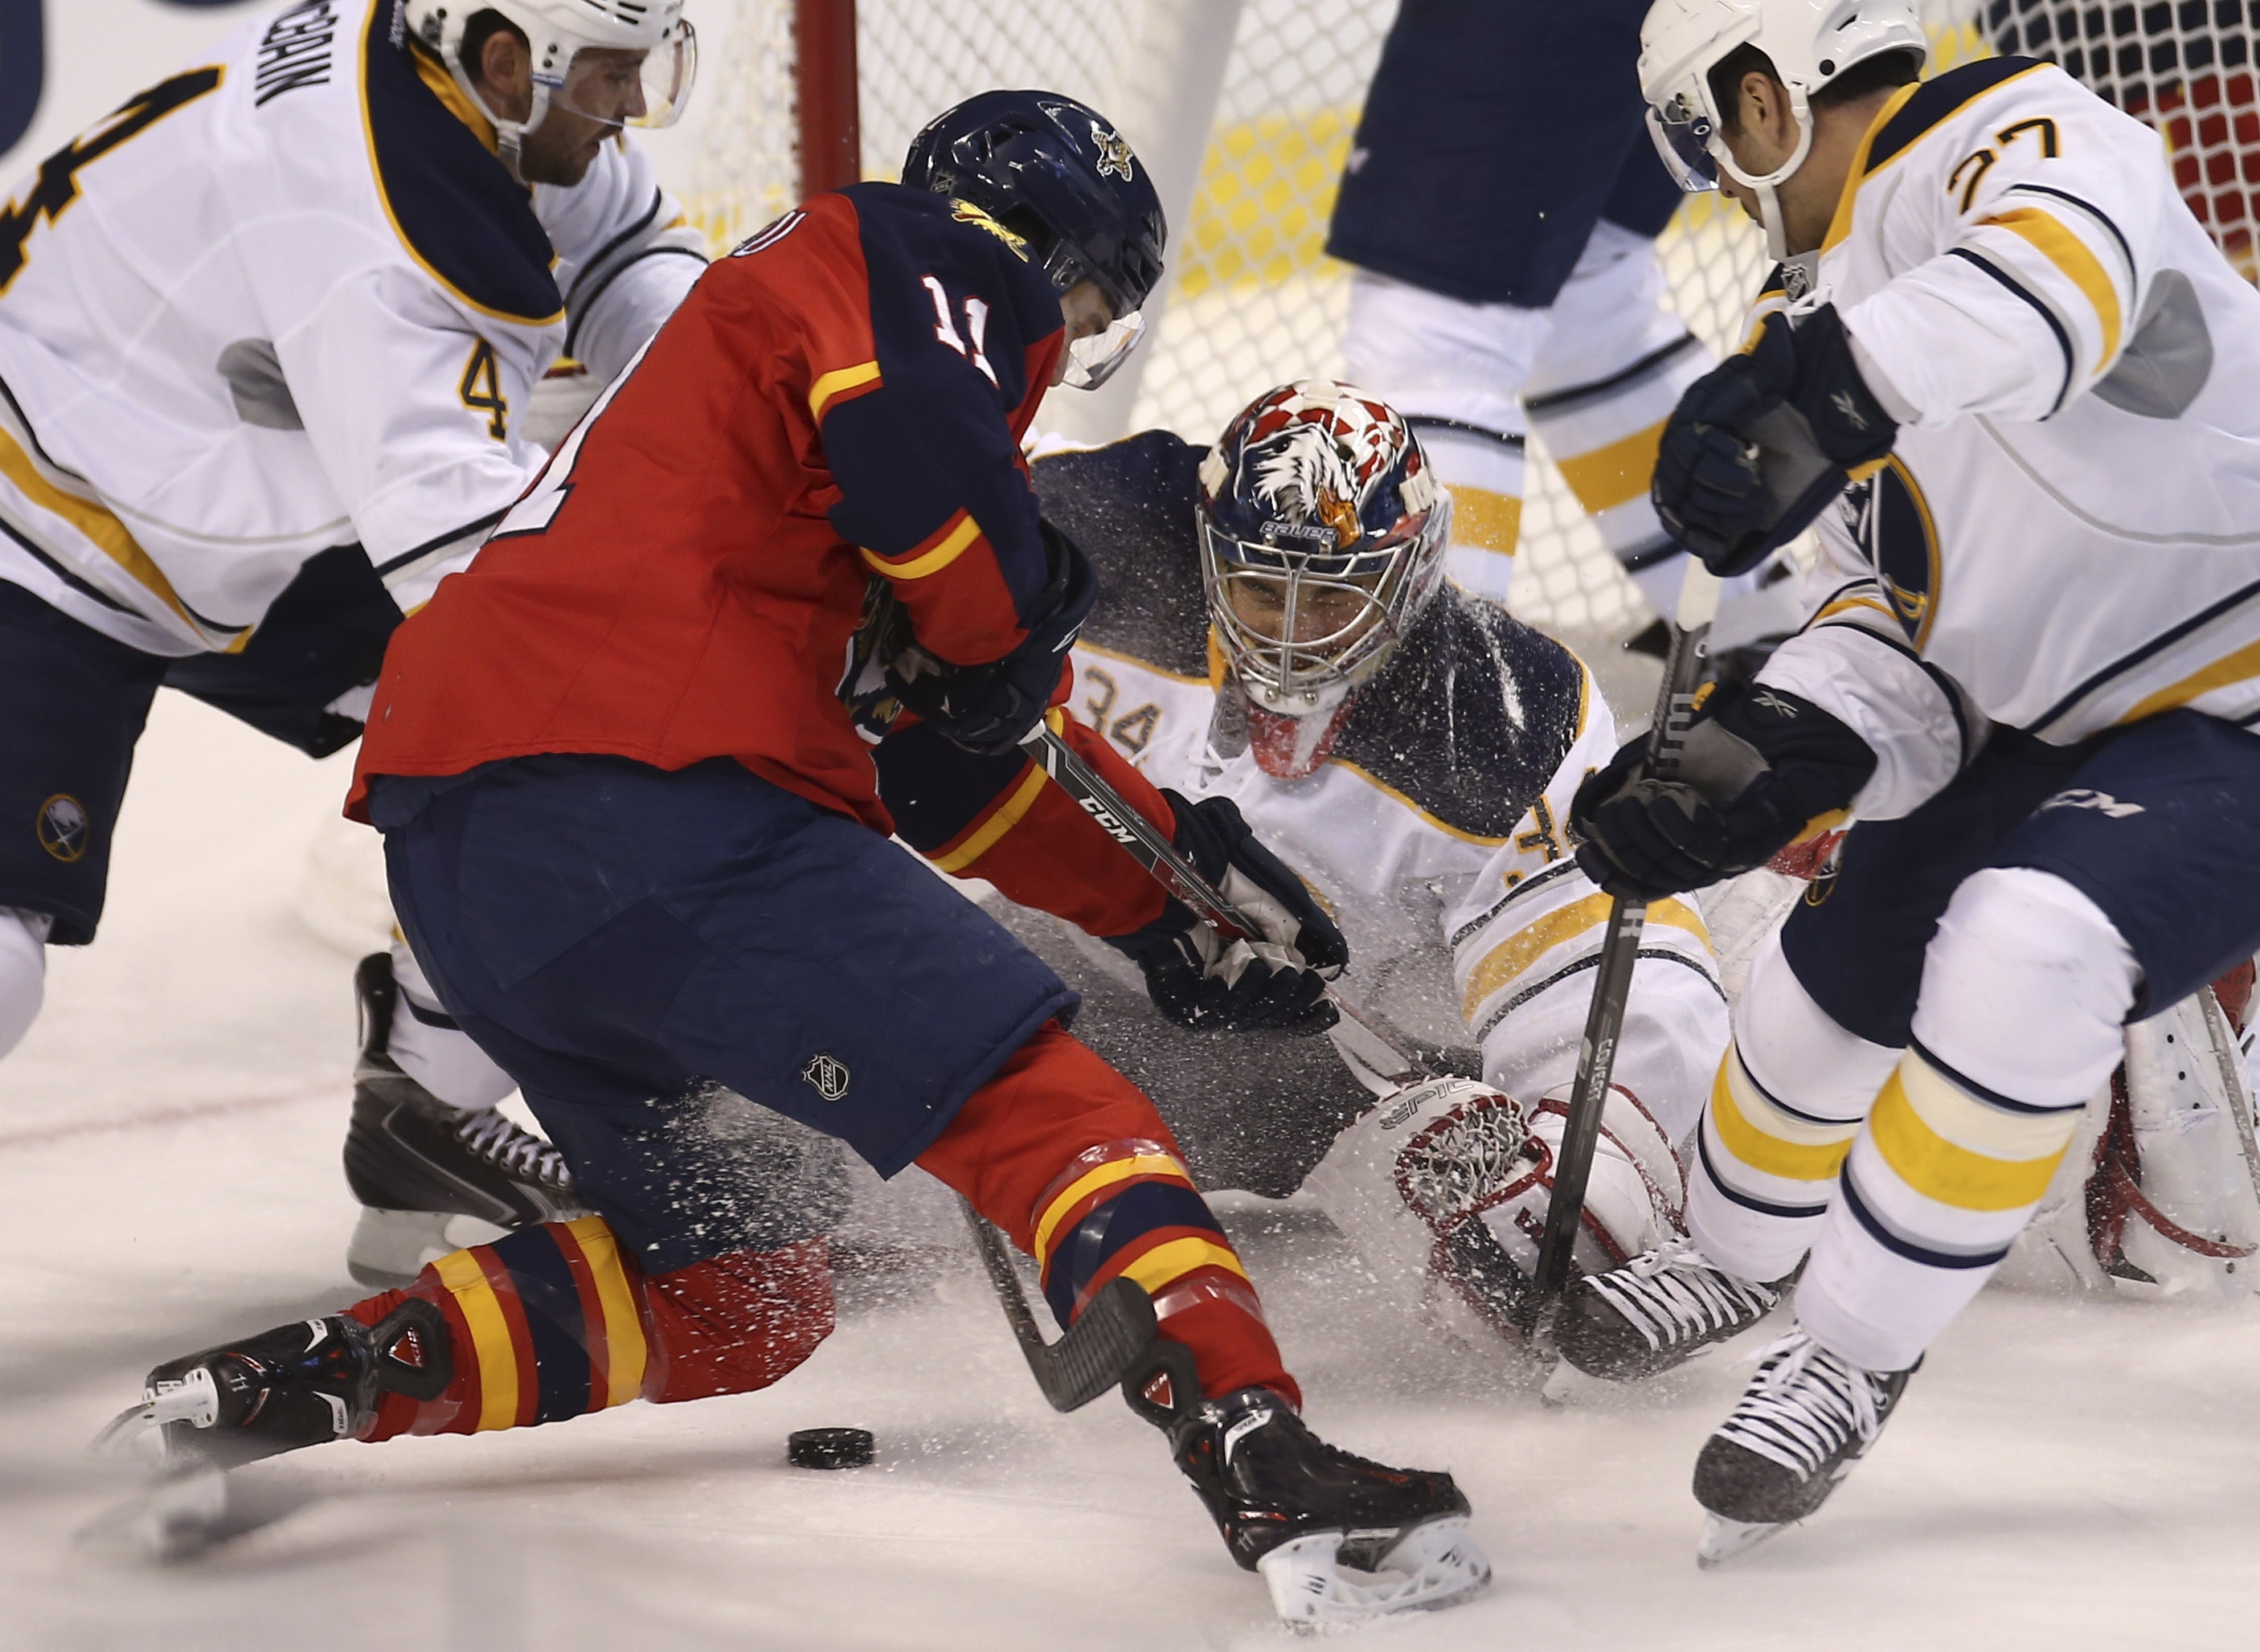 Goalie Michal Neuvirth makes his Sabres debut, stopping a shot by the Panthers' Jonathan Huberdeau. Florida won, 2-0.